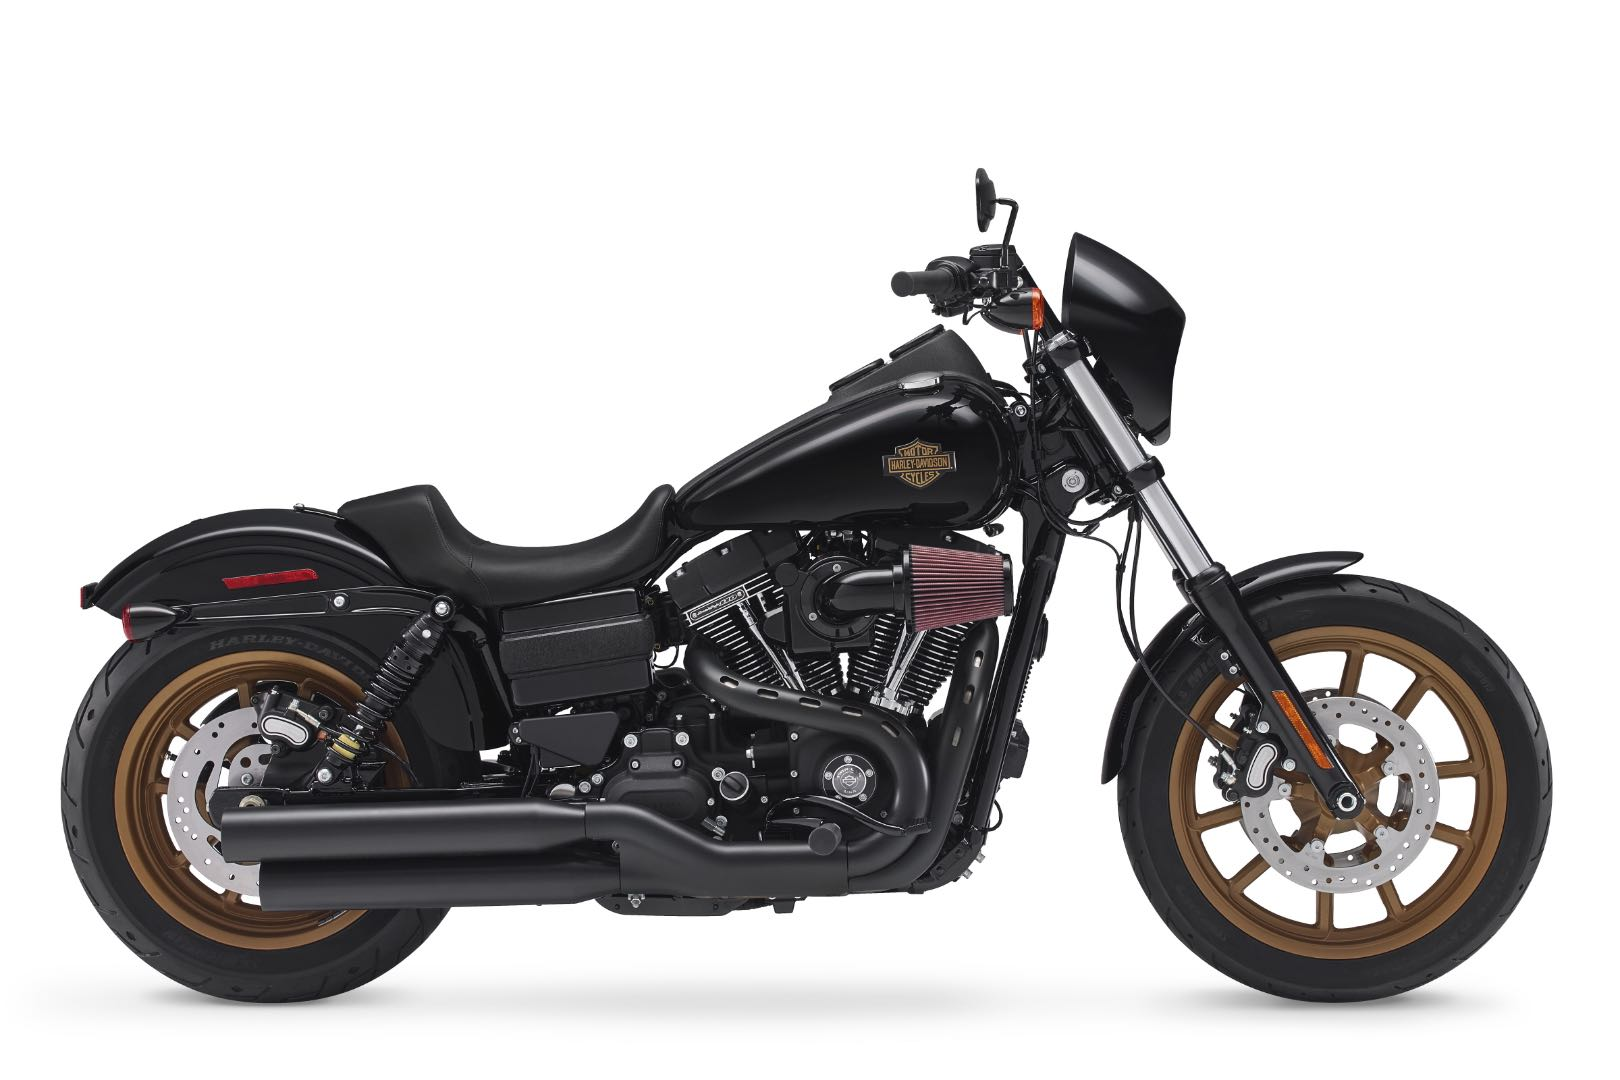 2017 harley-davidson dyna low rider s buyer's guide | specs & price